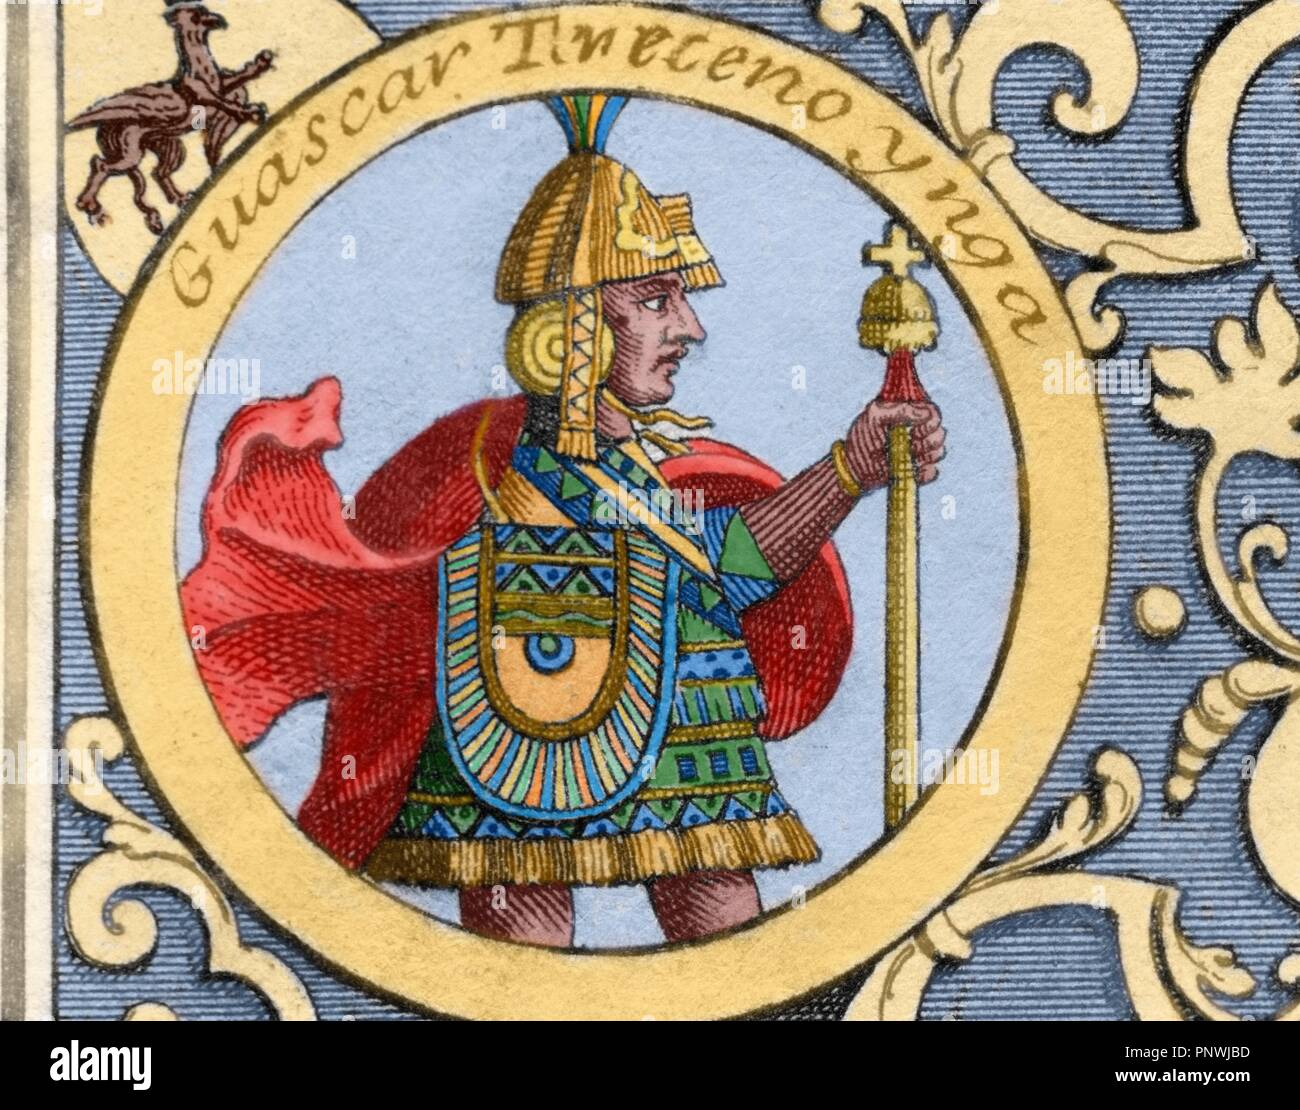 Huascar Inca (h.1491-1532).  Sapa Inca of the Inca empire from 1527 to 1532. Son of Huayna Capac. Colored engraving. 1726. - Stock Image